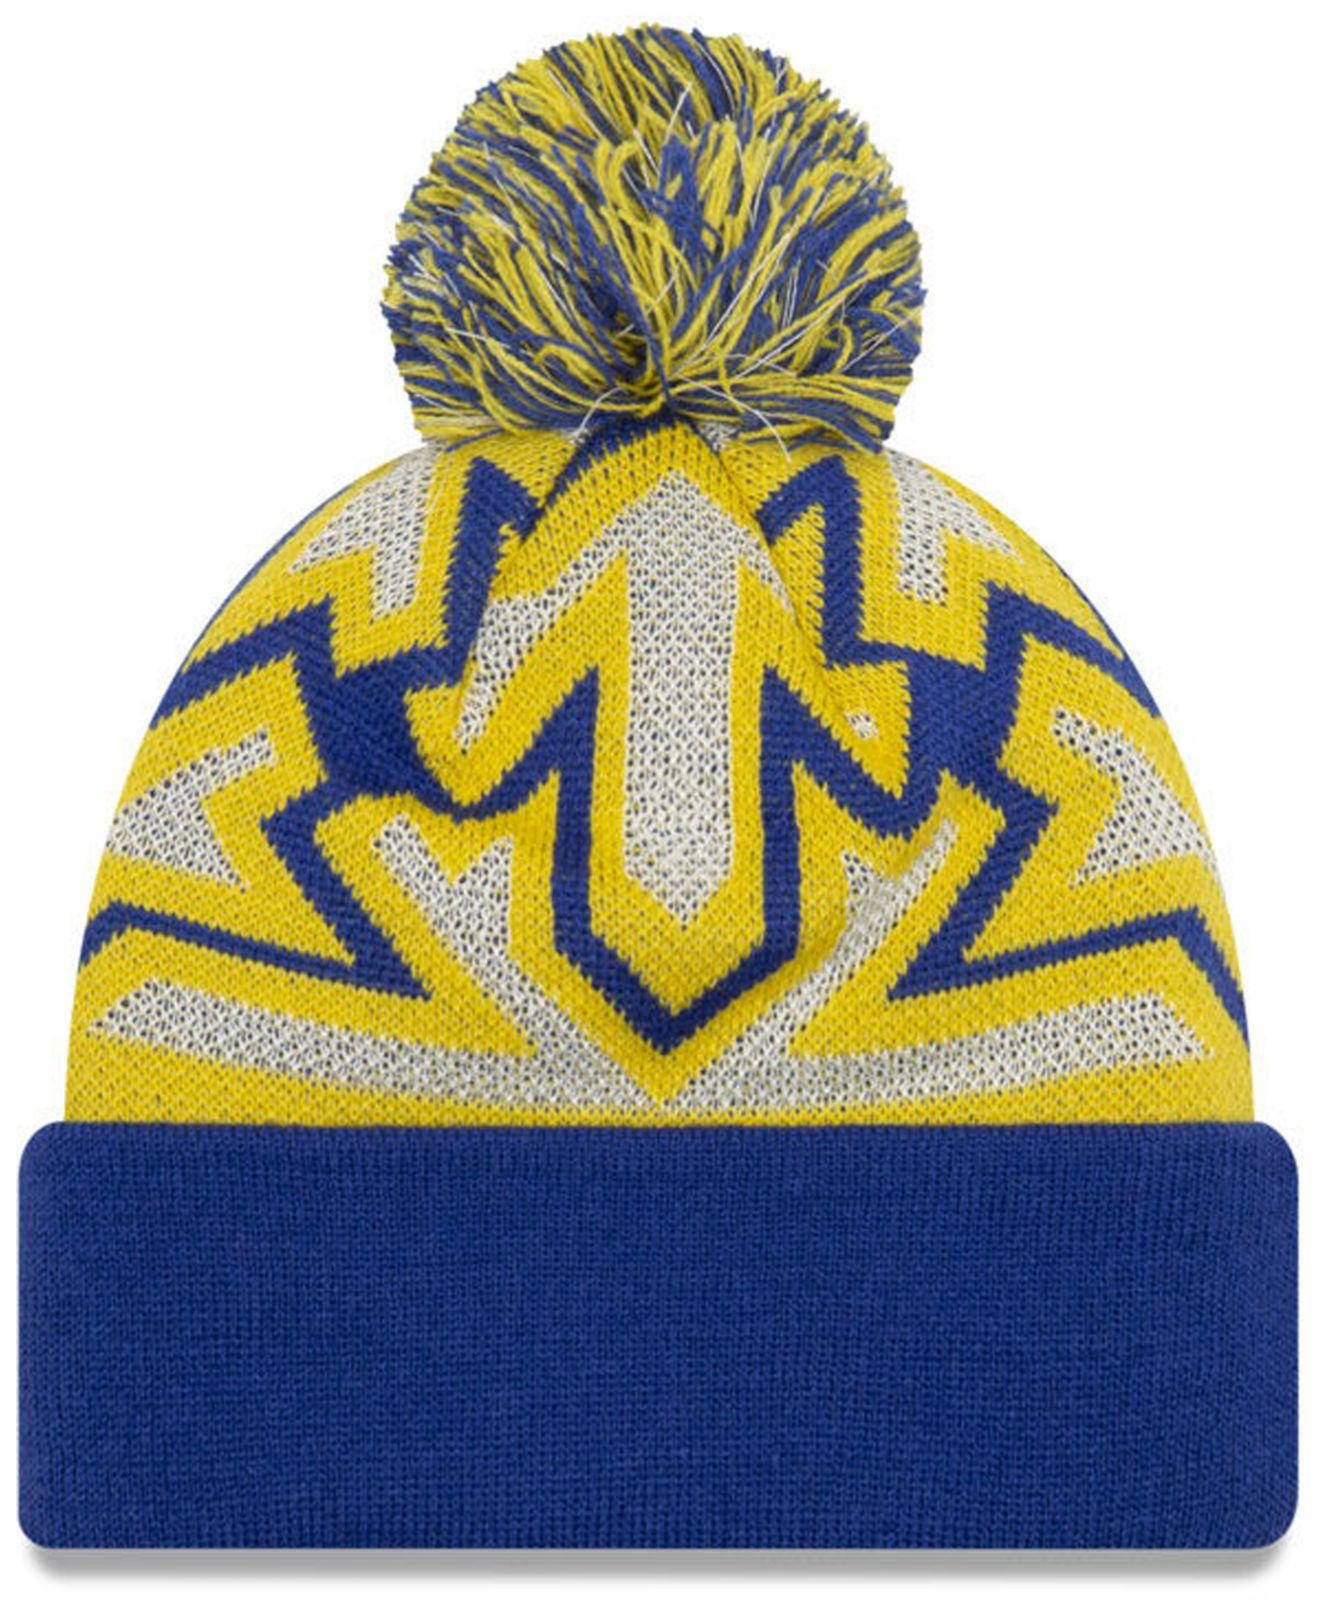 separation shoes 55a45 3e931 KTZ Golden State Warriors Glowflake Cuff Knit Hat in Yellow for Men - Lyst